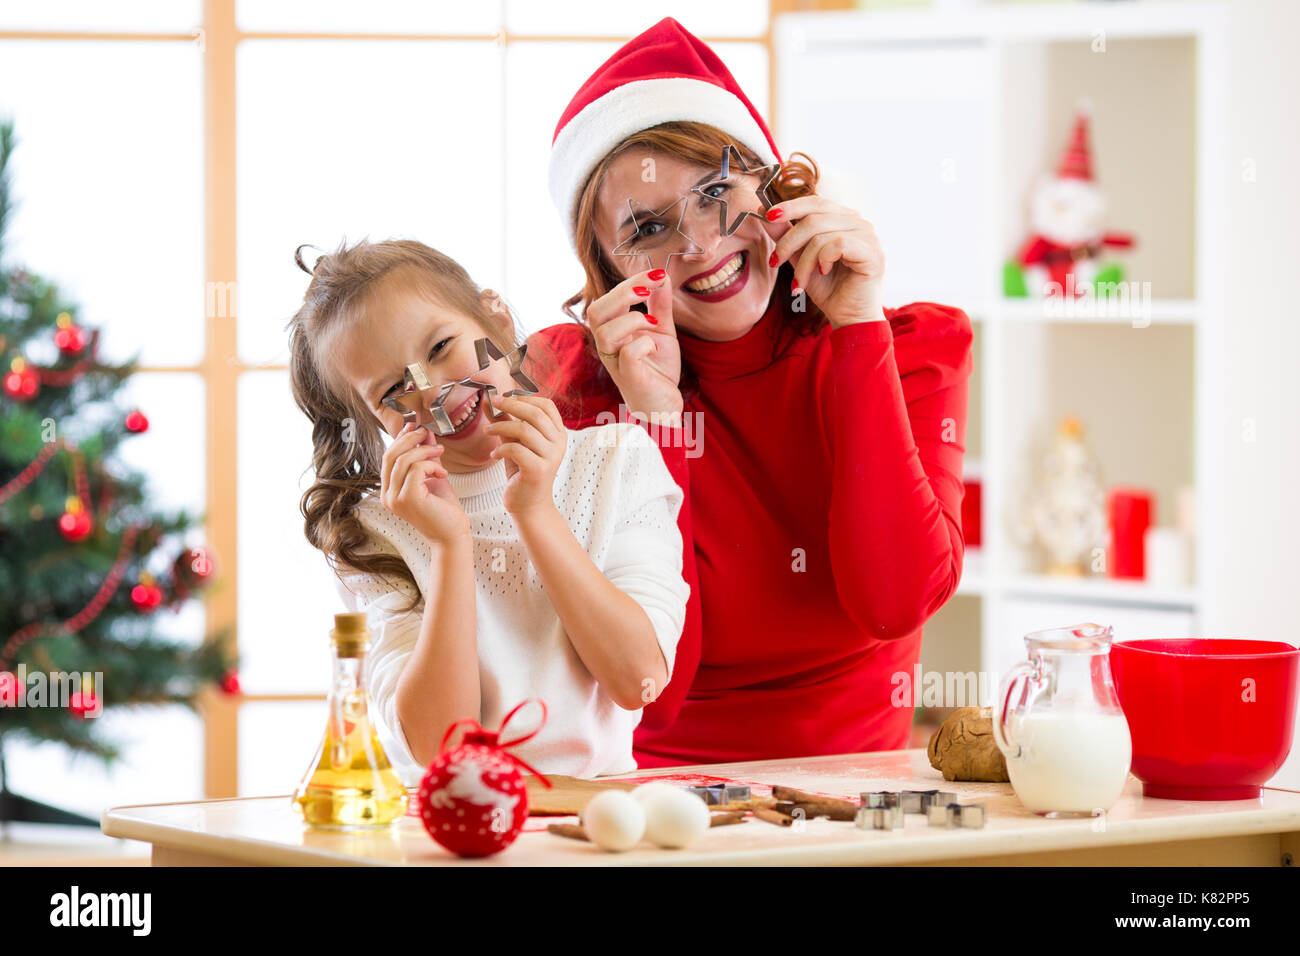 Mother and daughter baking Christmas cookies. Child and woman jokes around with shape for modeling - Stock Image